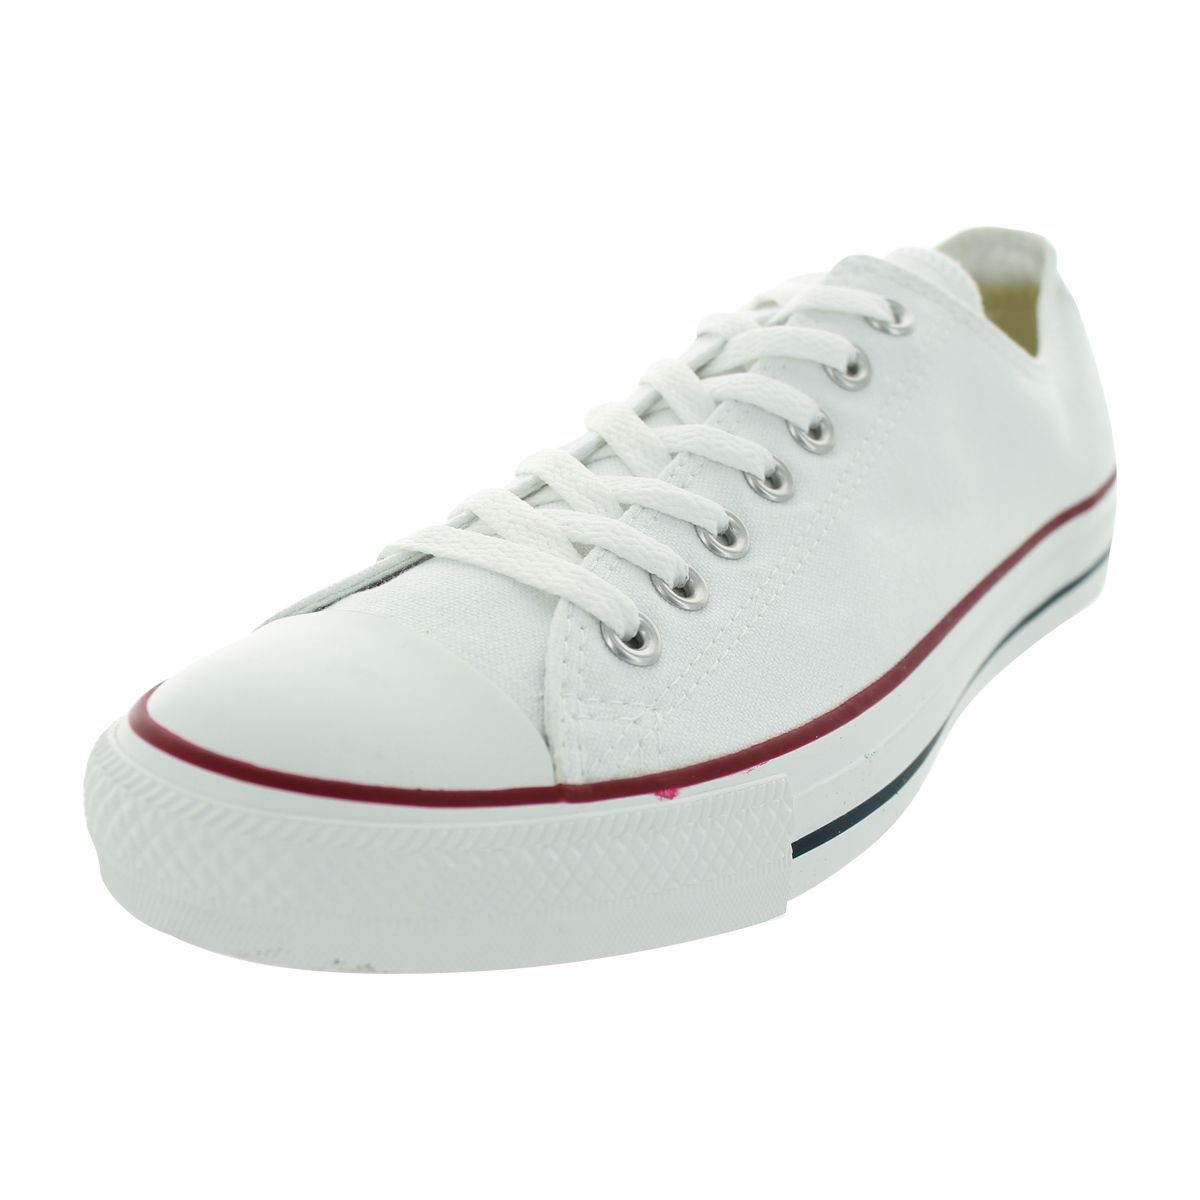 04b4c8c8f7ee Converse Chuck Taylor All Star Oxford Sneakers